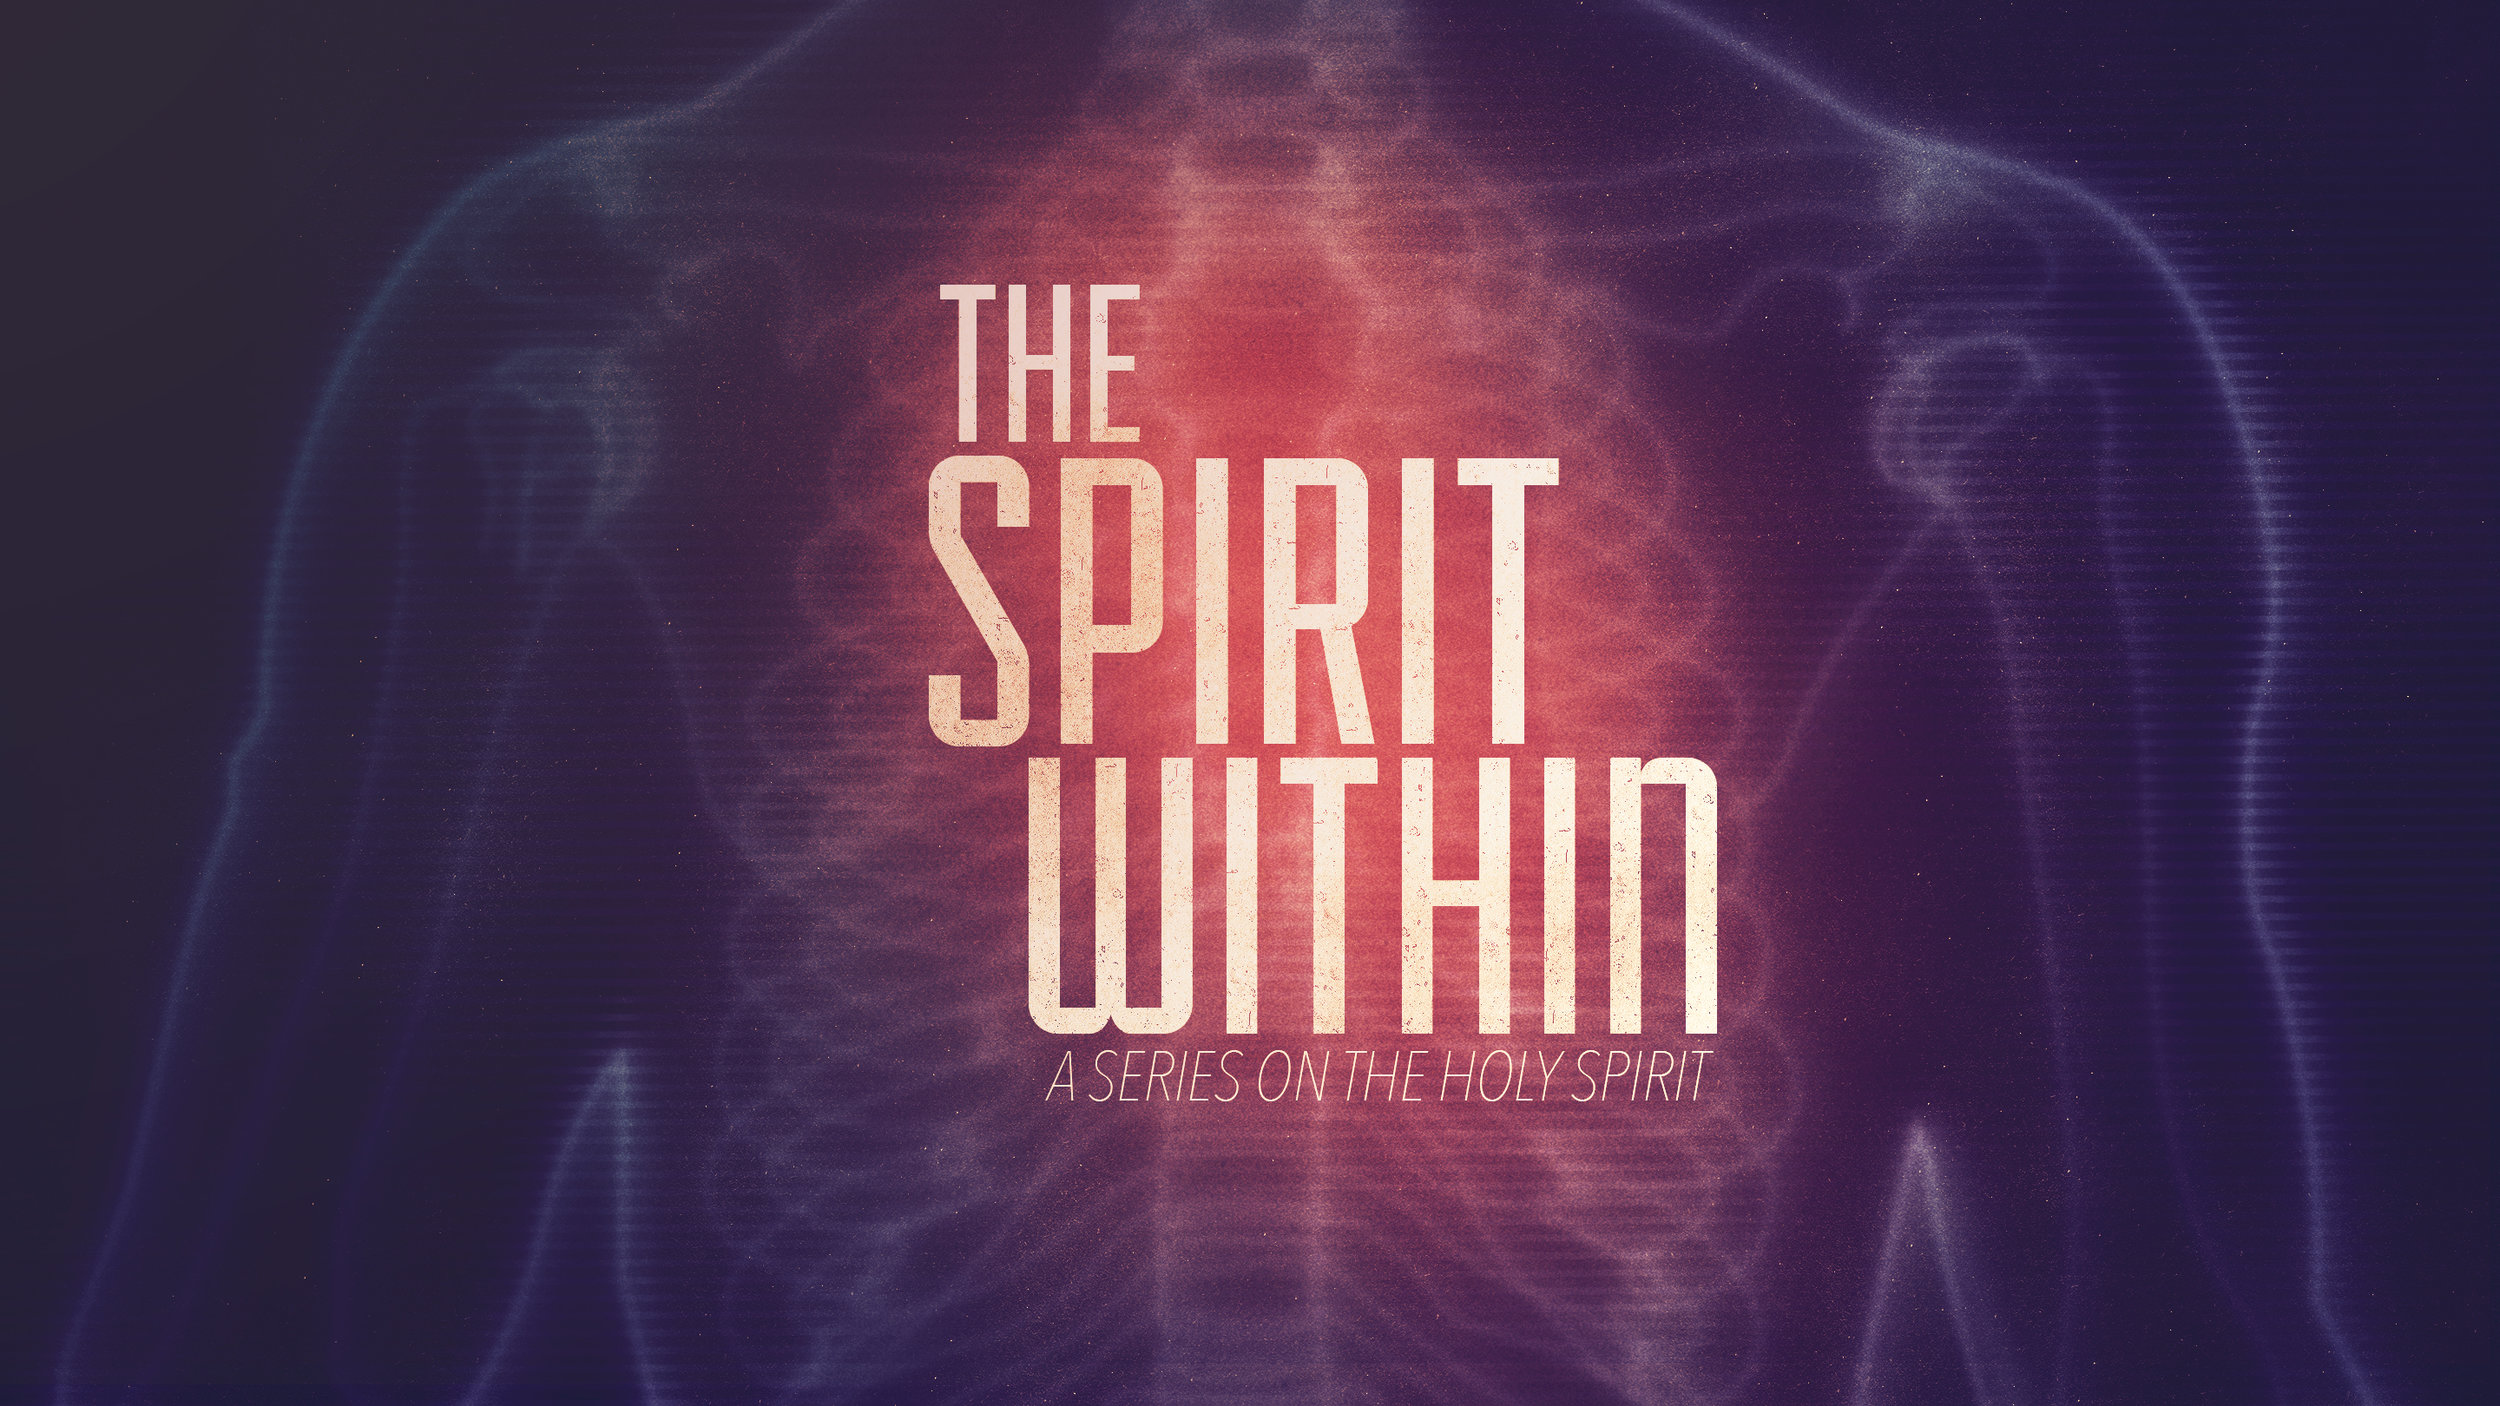 Part 5: The Fruit of the Spirit  12/4/16